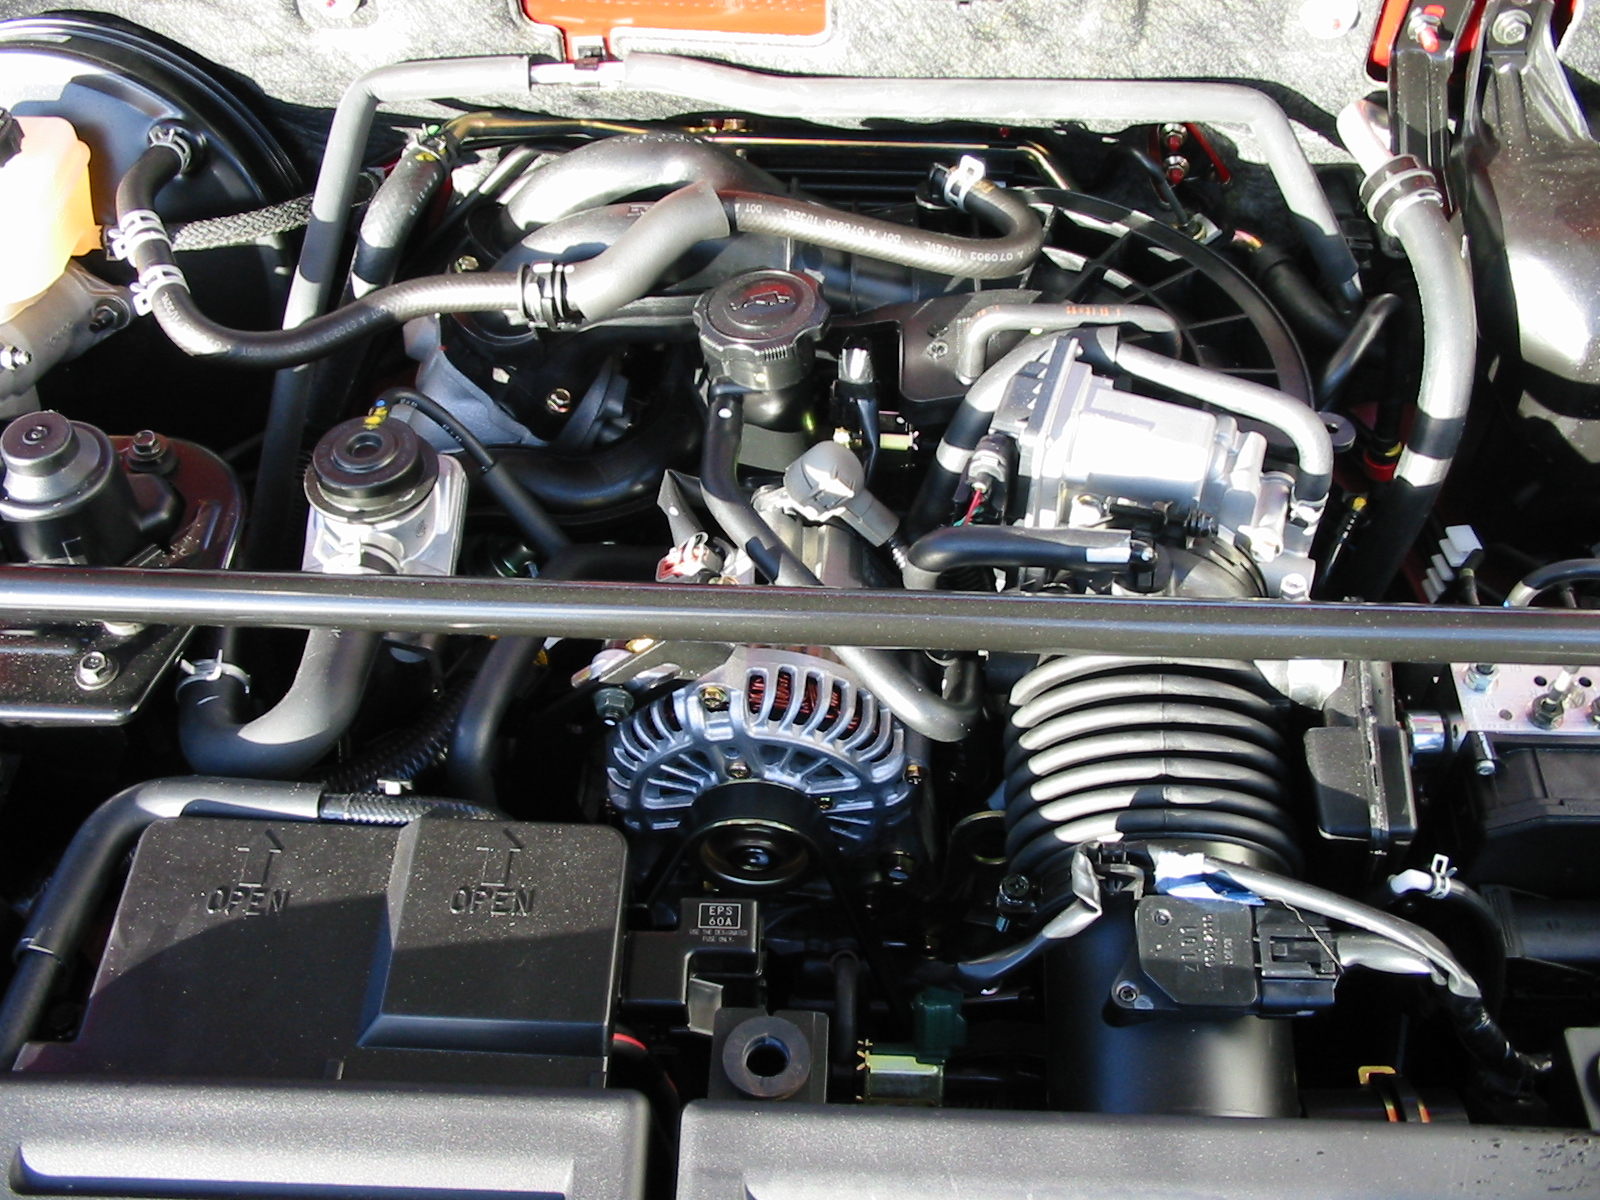 File:Mazda rx-8 engine bay with cover removed.jpg